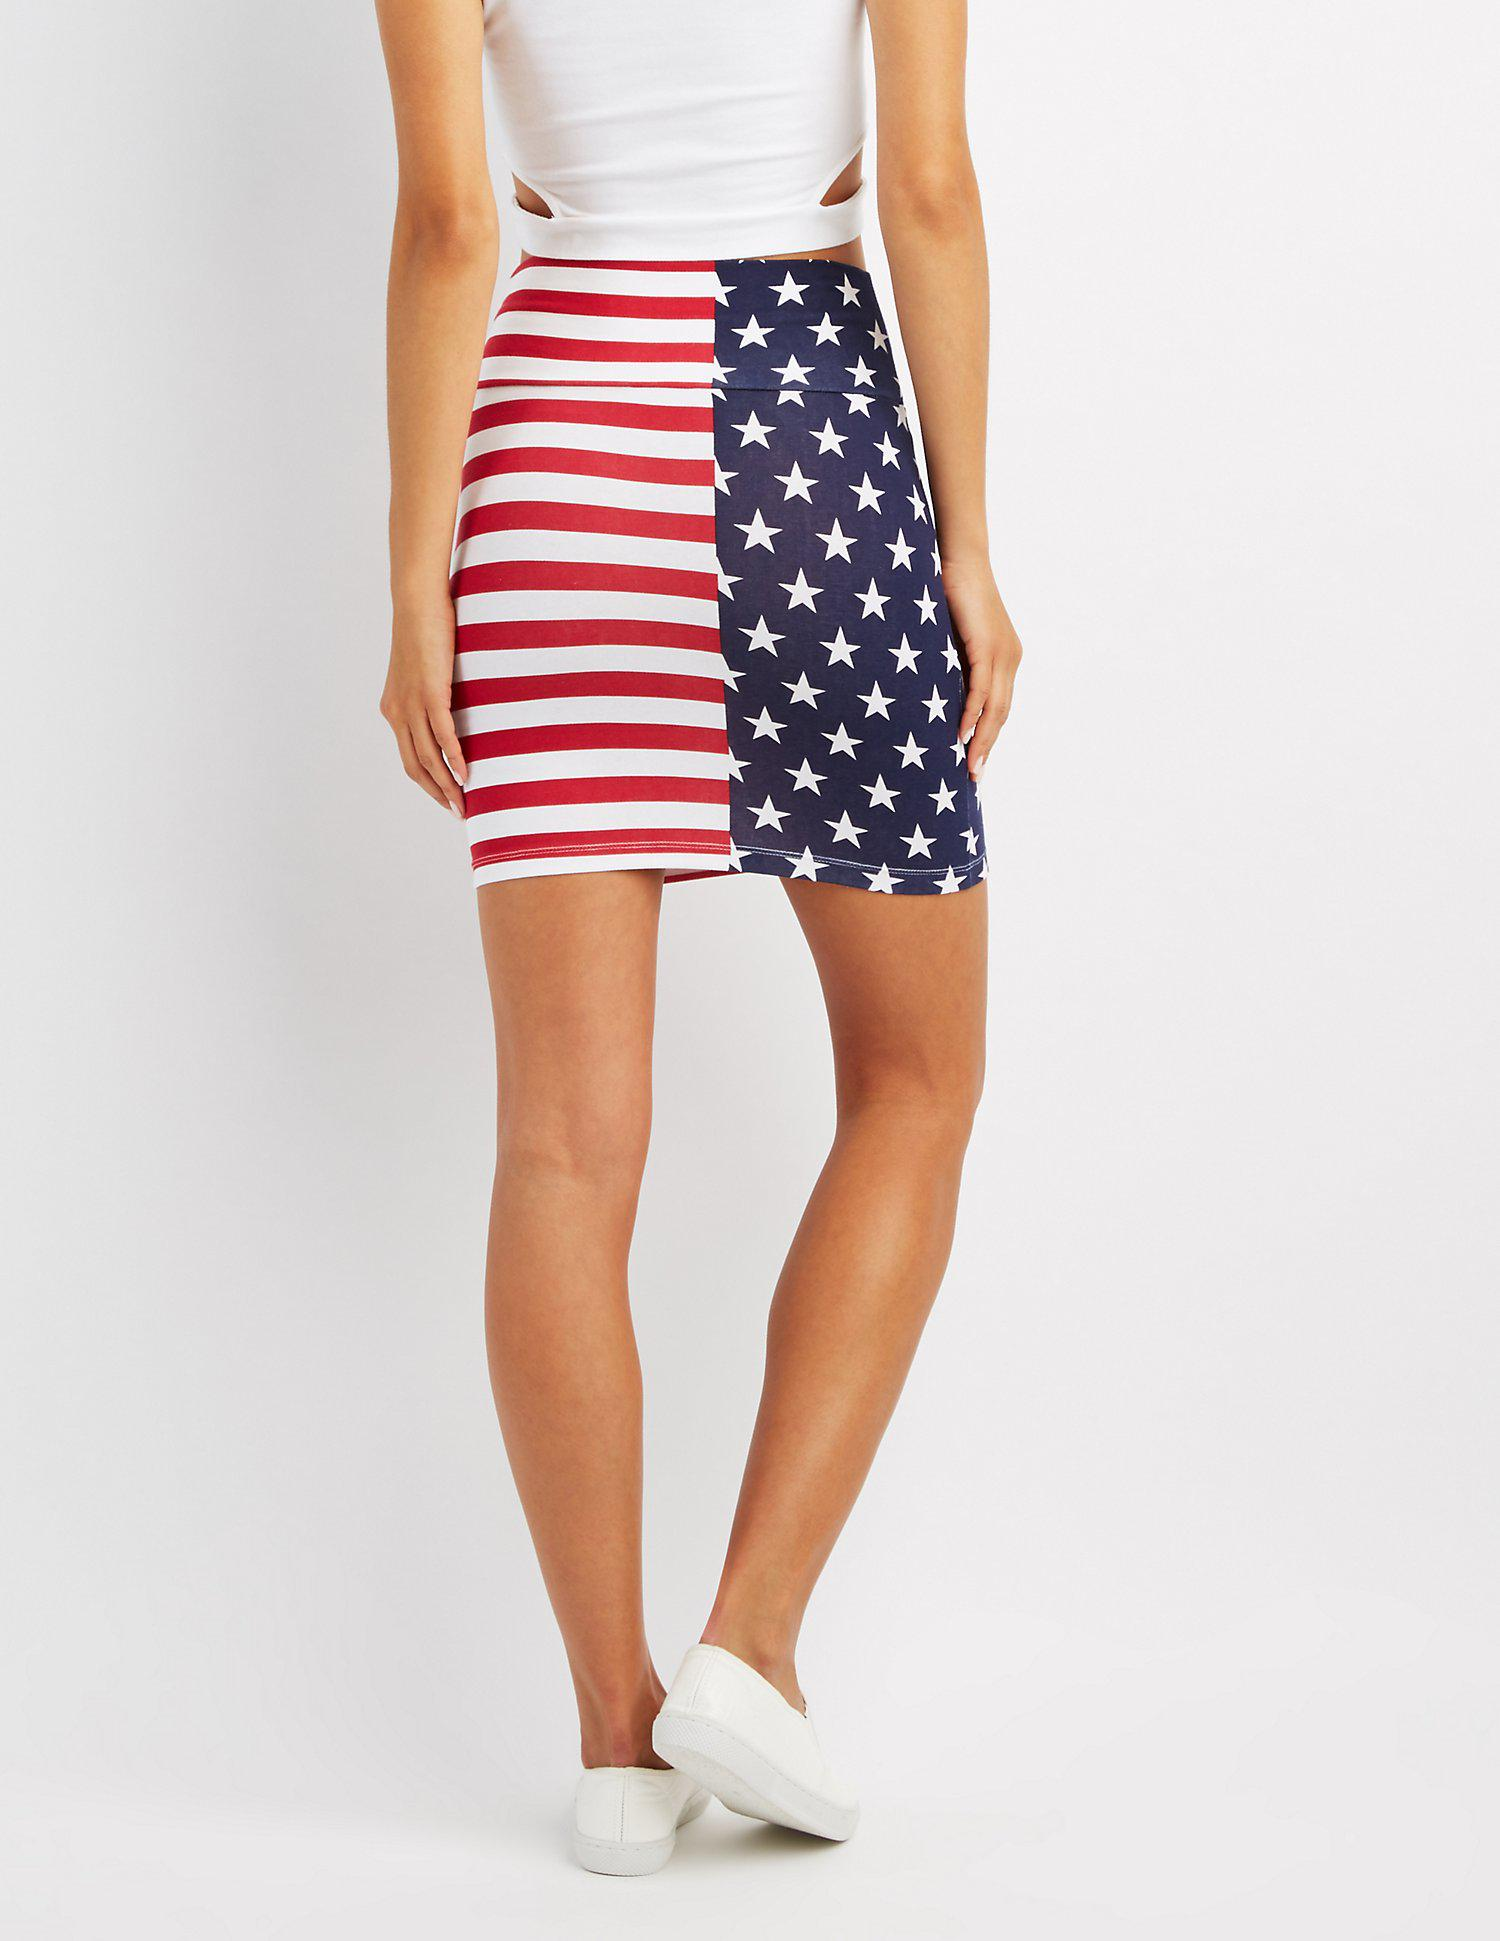 f99d453aa American Flag Pencil Skirt - Best Picture Of Flag Imagesco.Org